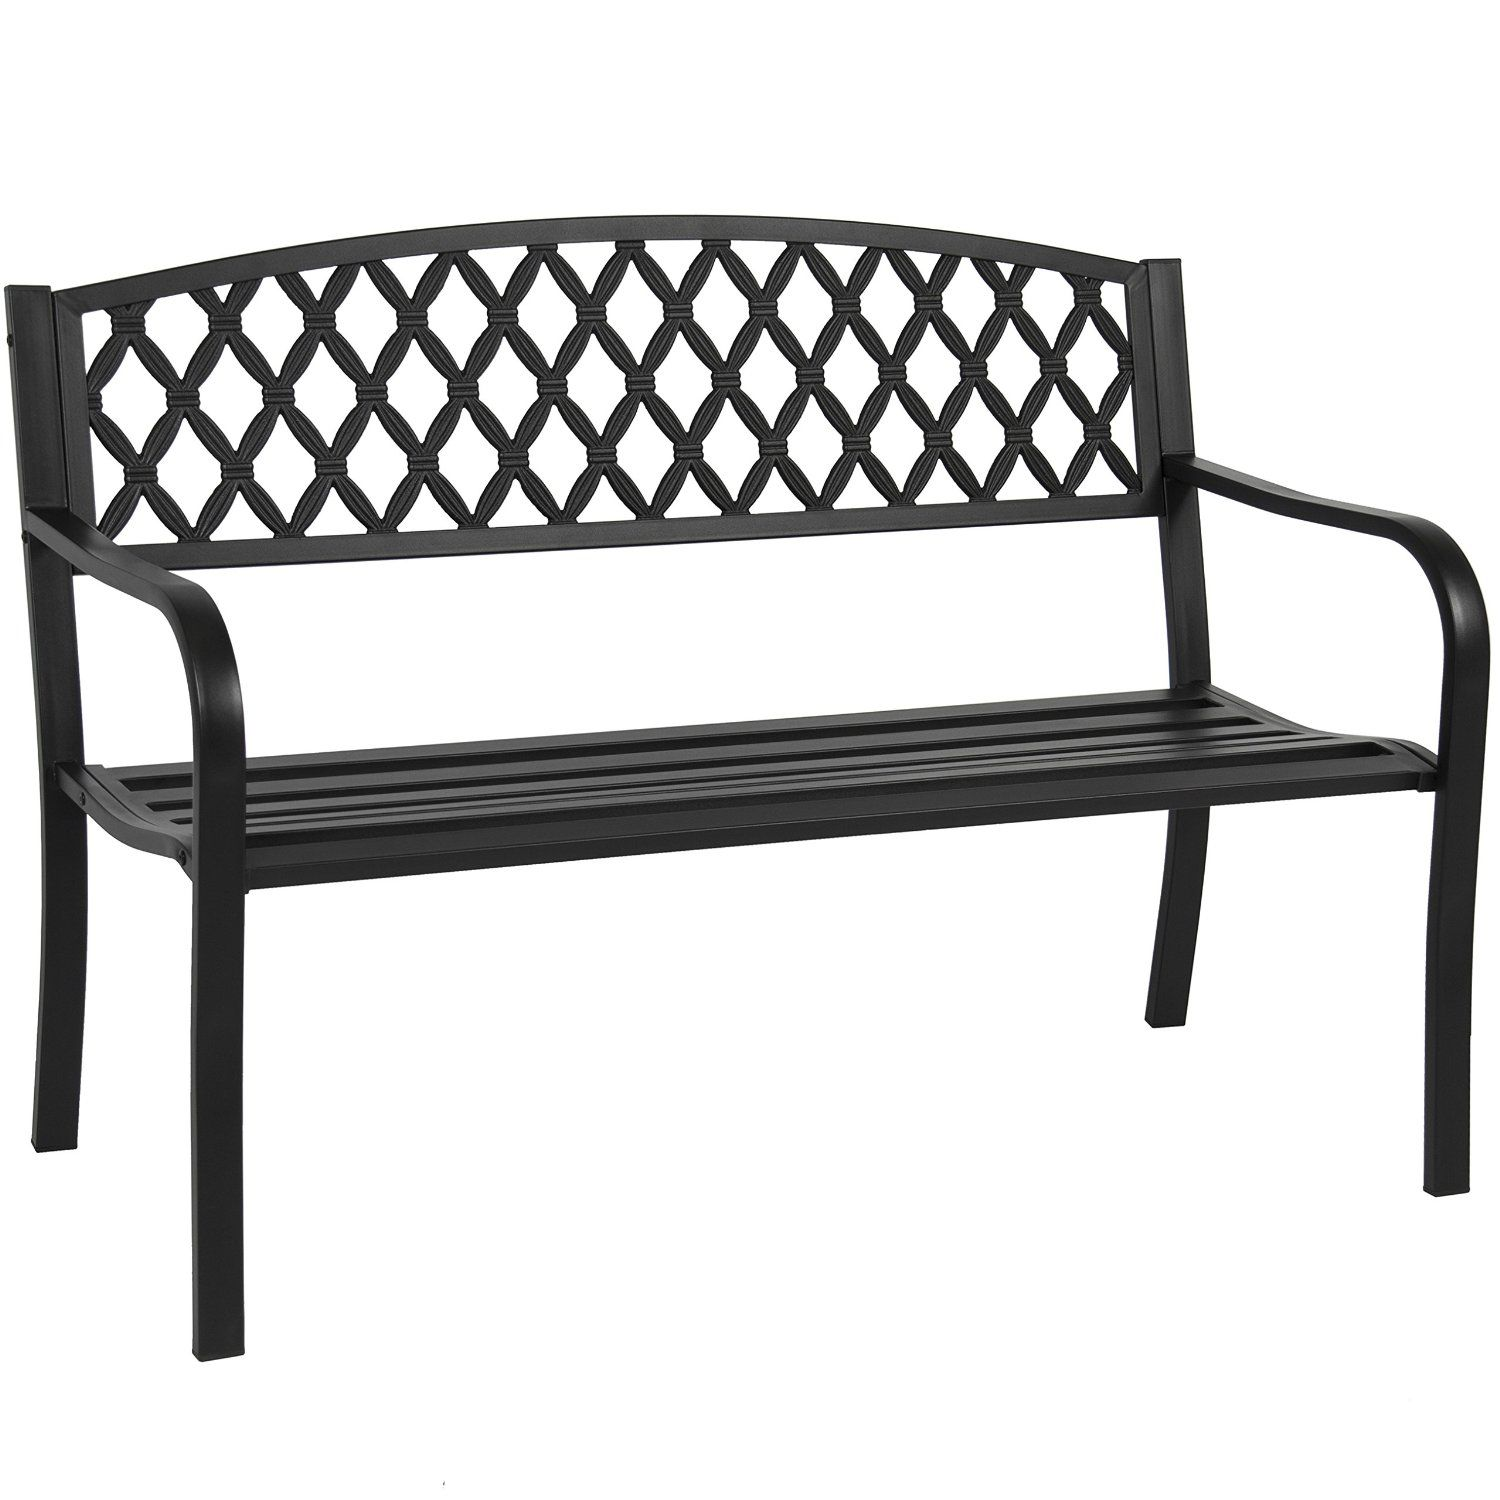 Amazon Best Choice Products 50 Patio Garden Bench